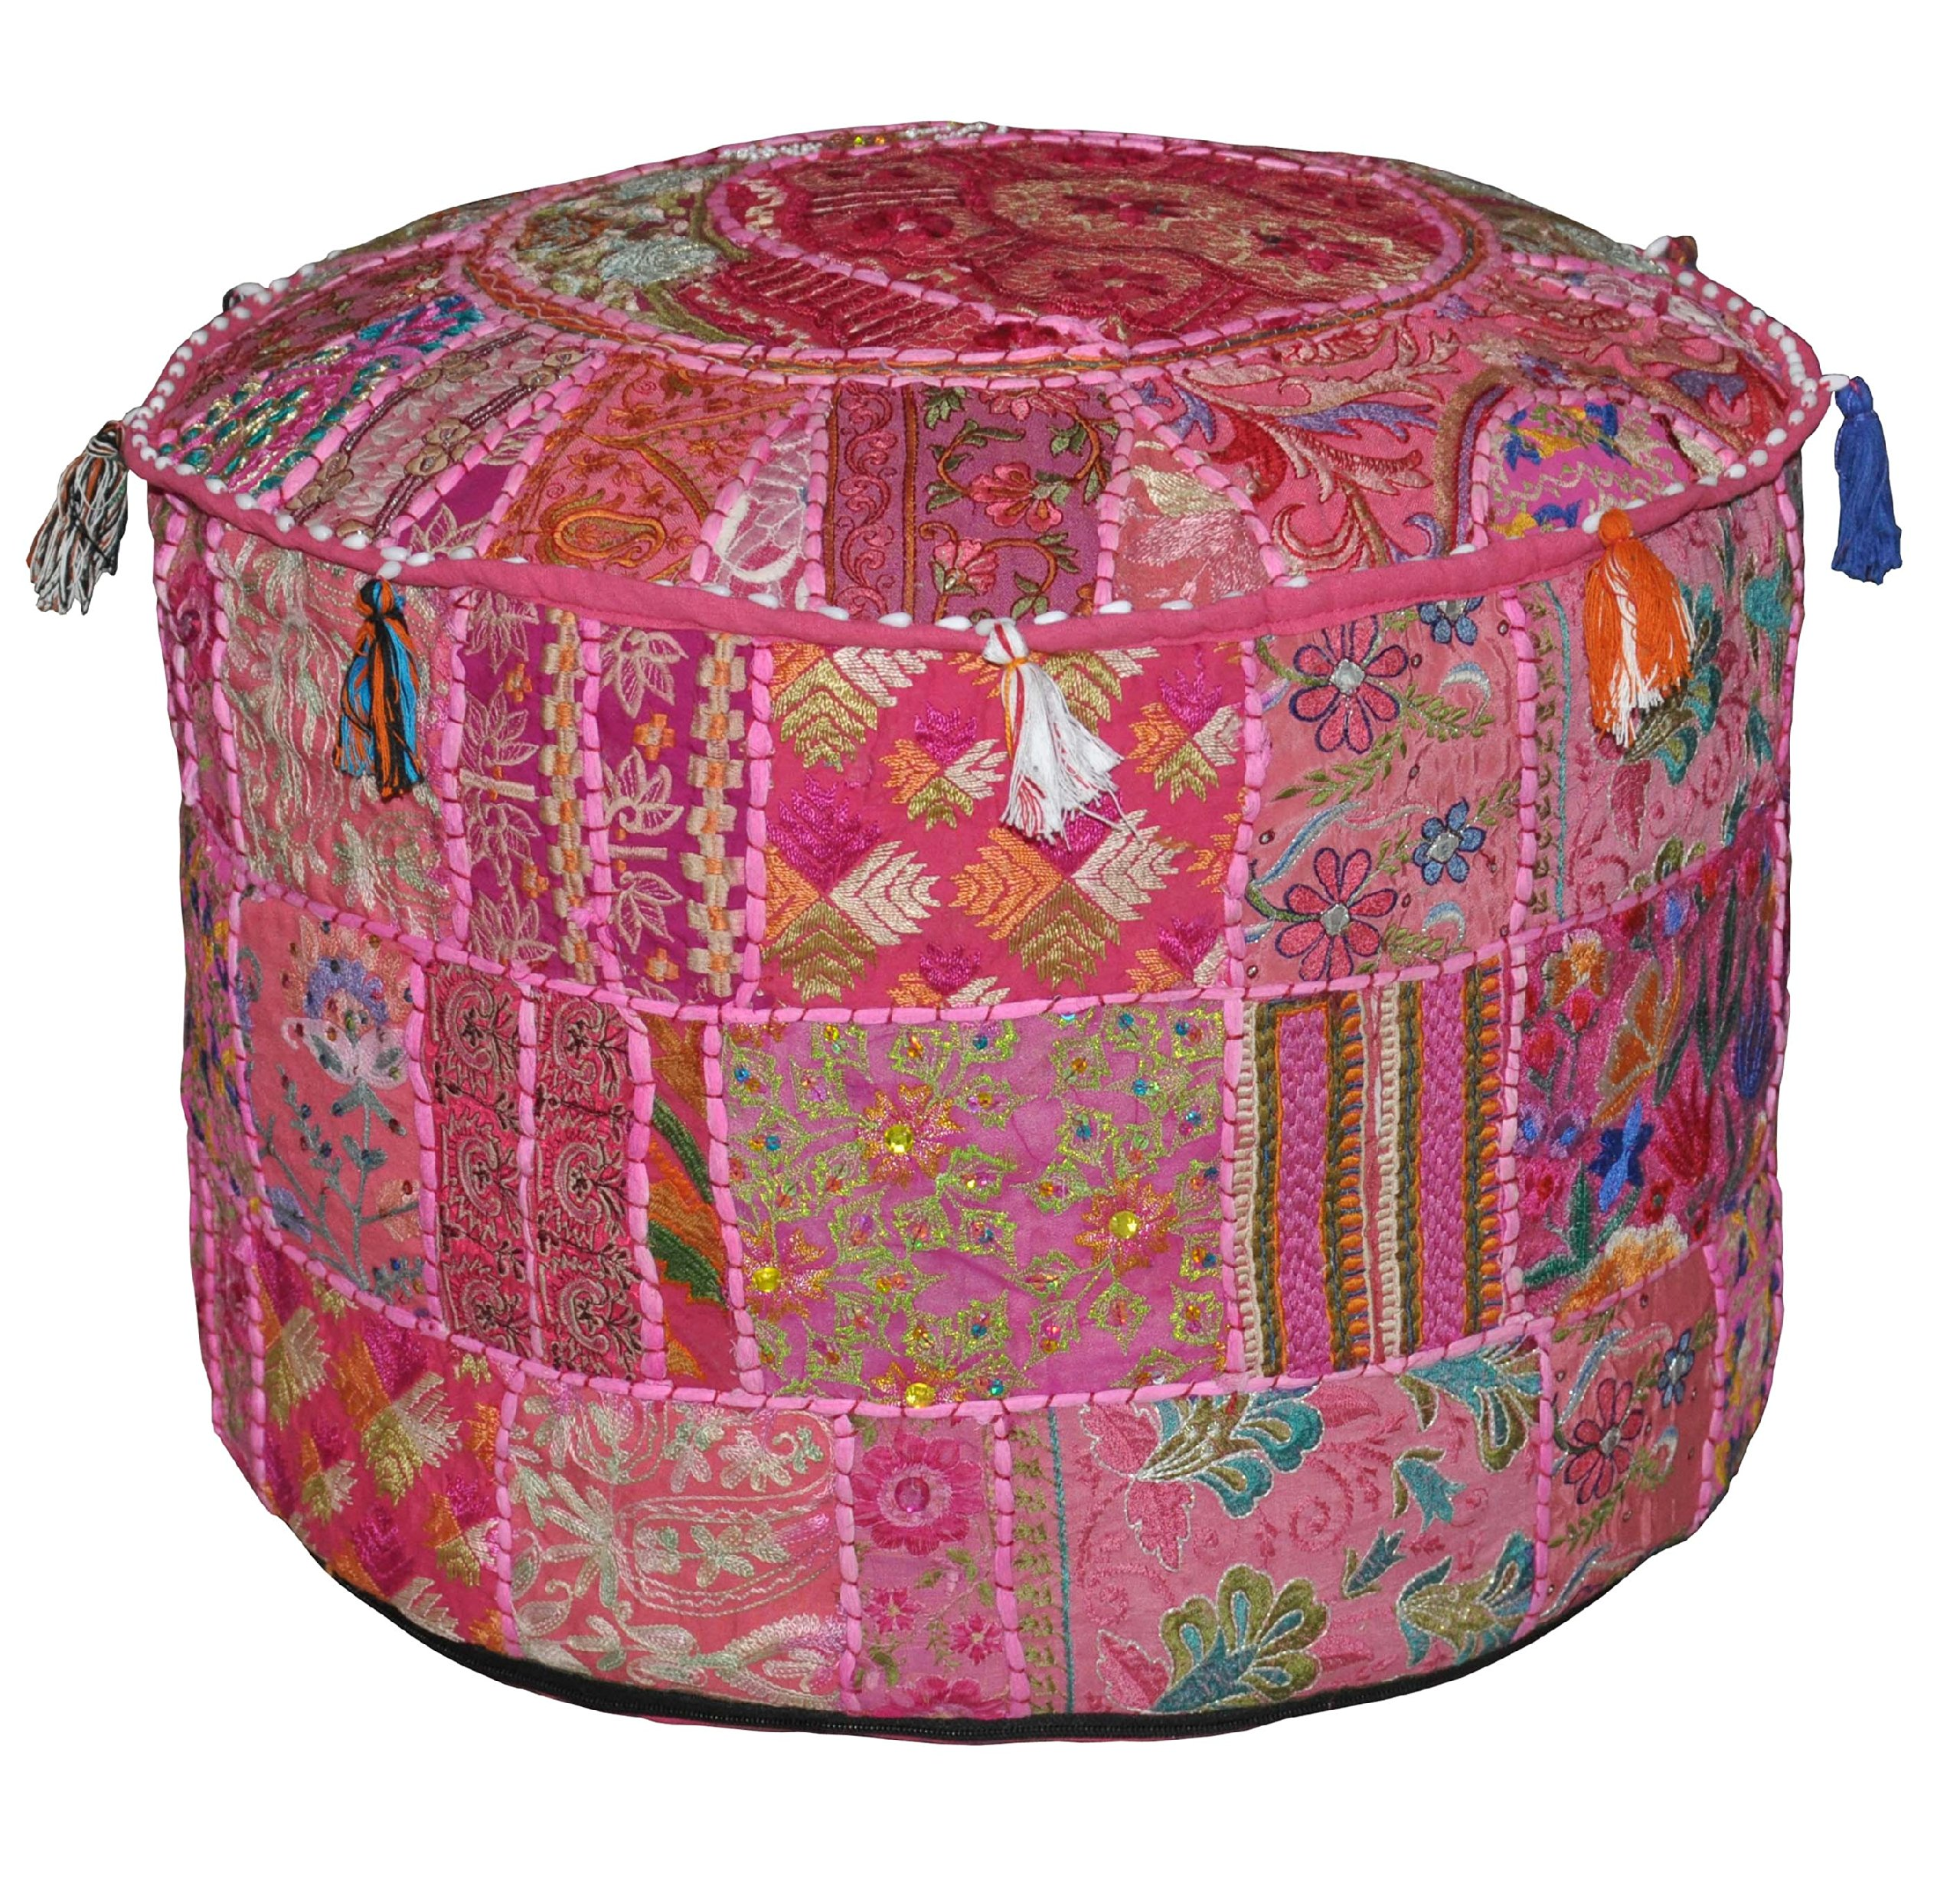 Indian Vintage Ottoman Embellished with Embroidery & Patchwork Foot Stool Floor Cushion Cover, 23 X 13 Inches